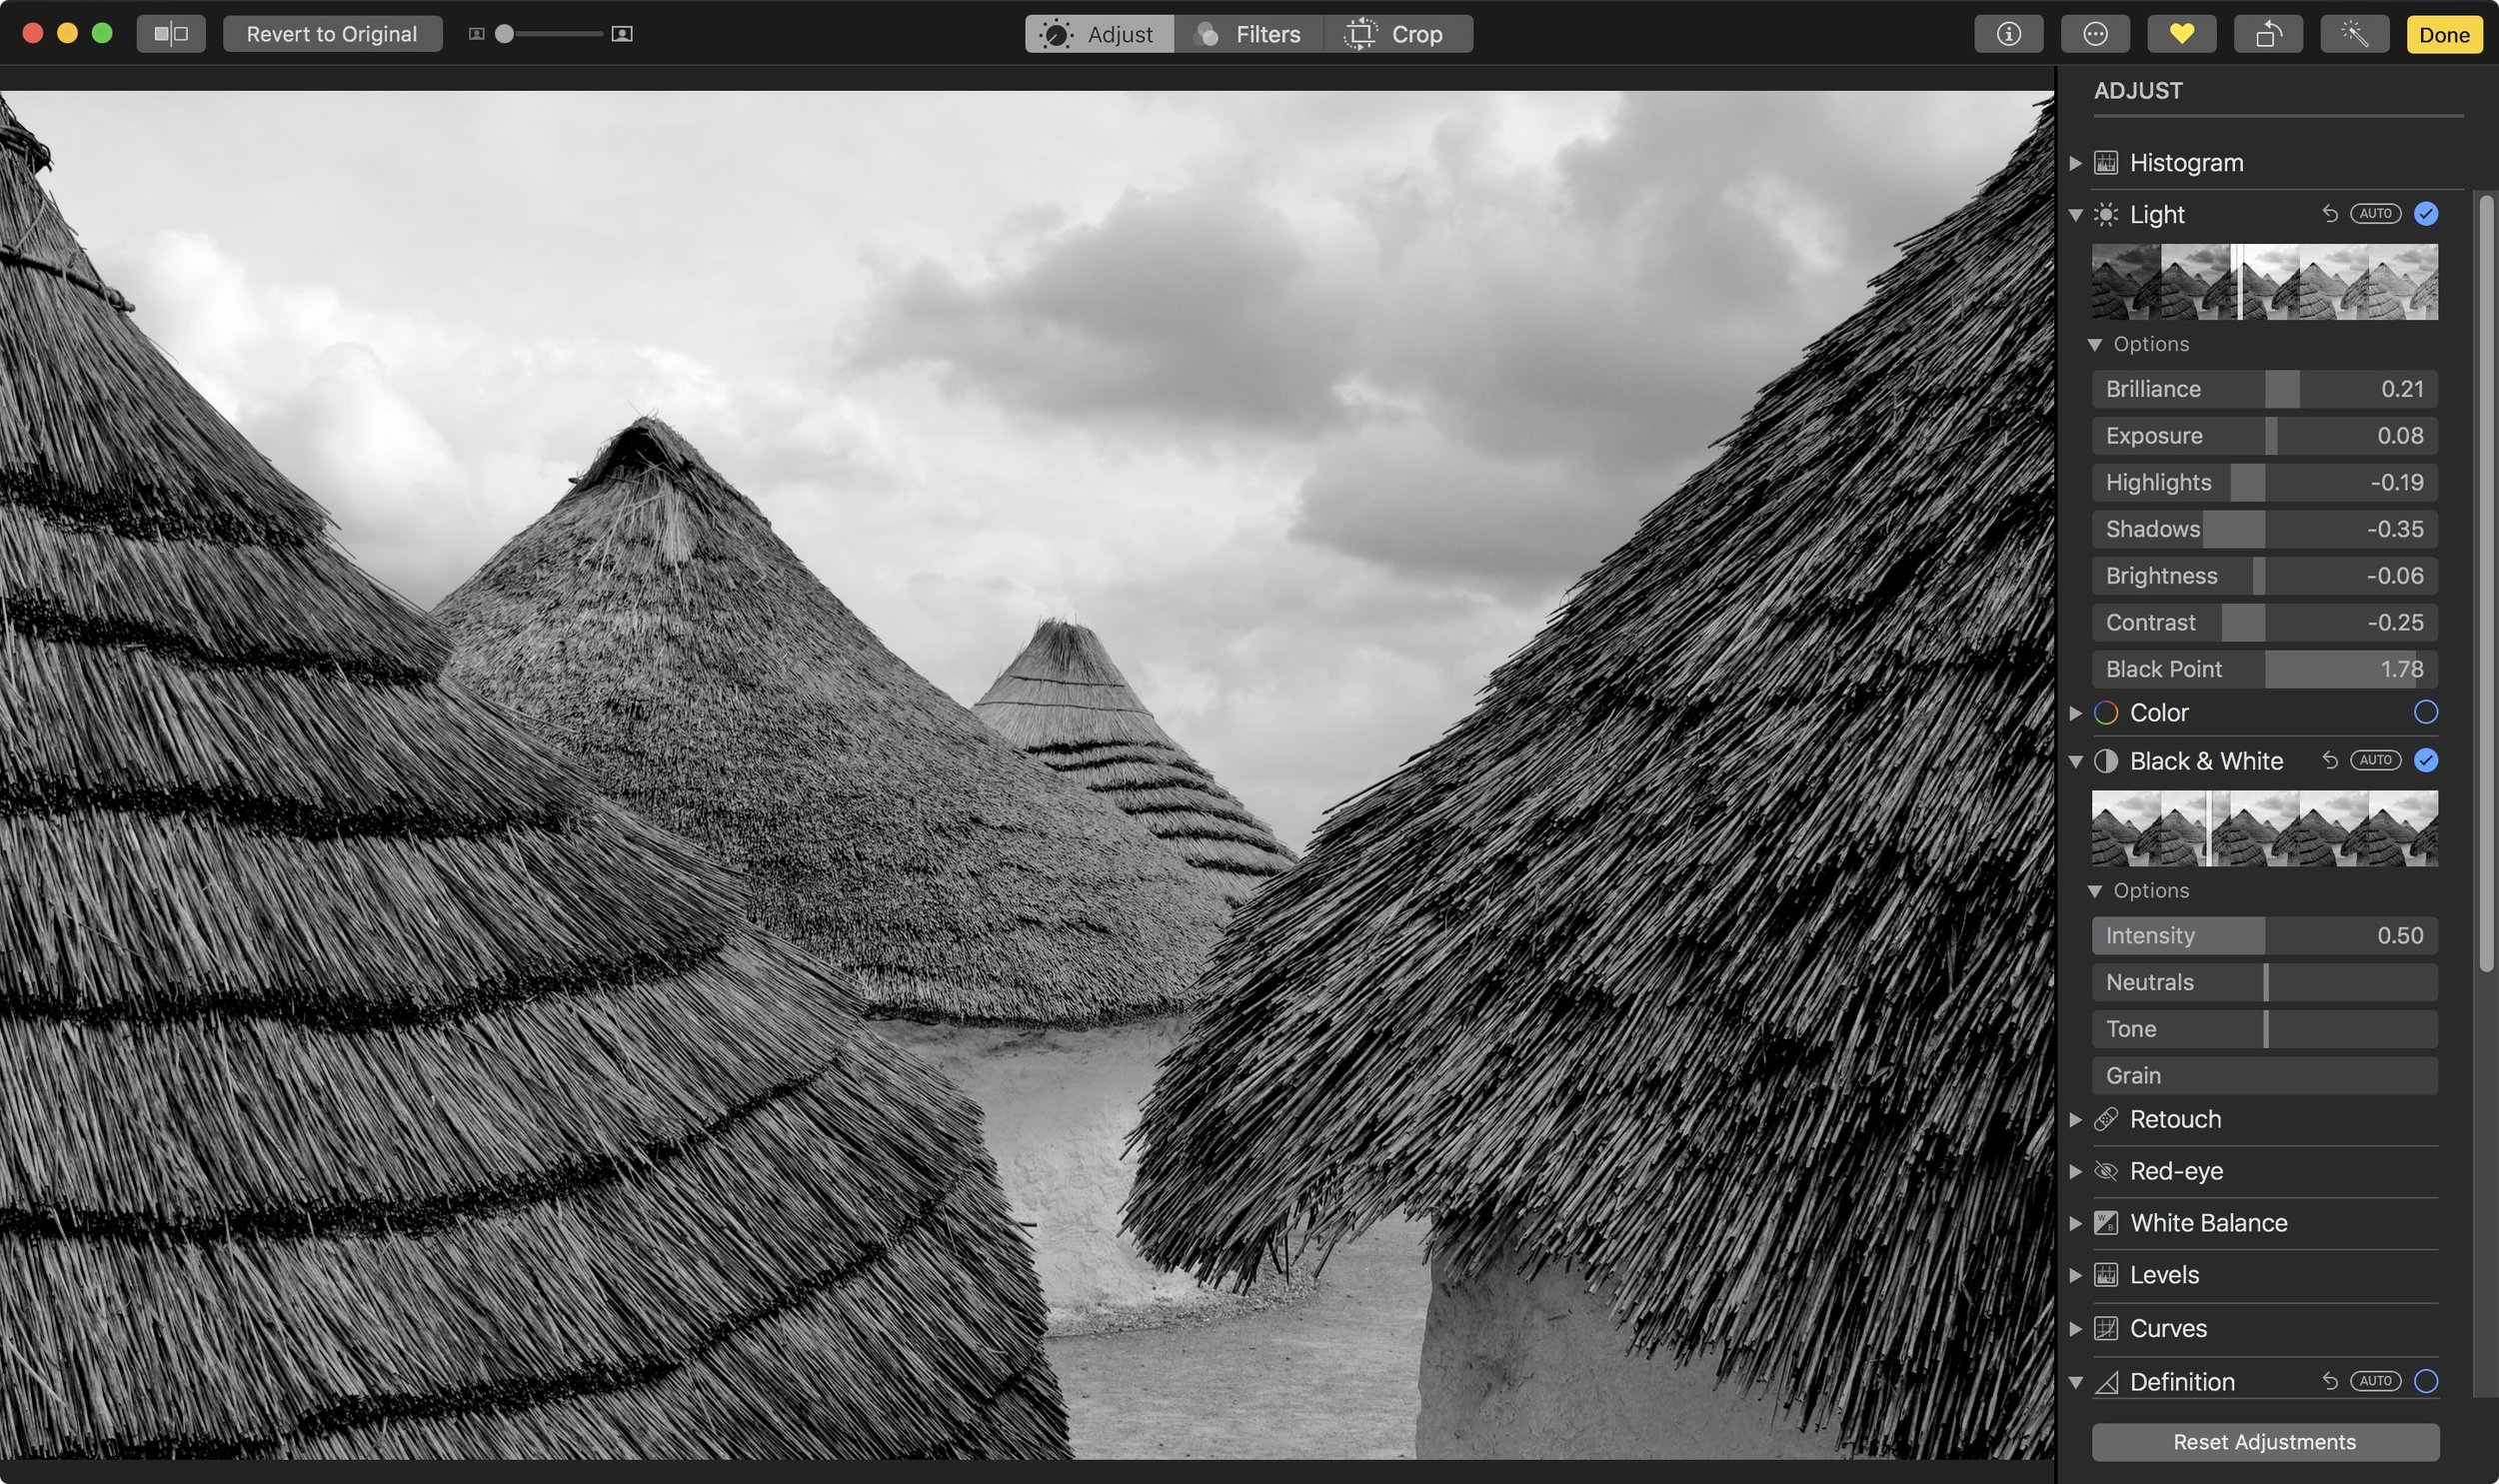 This image was converted using the Black & White slider.